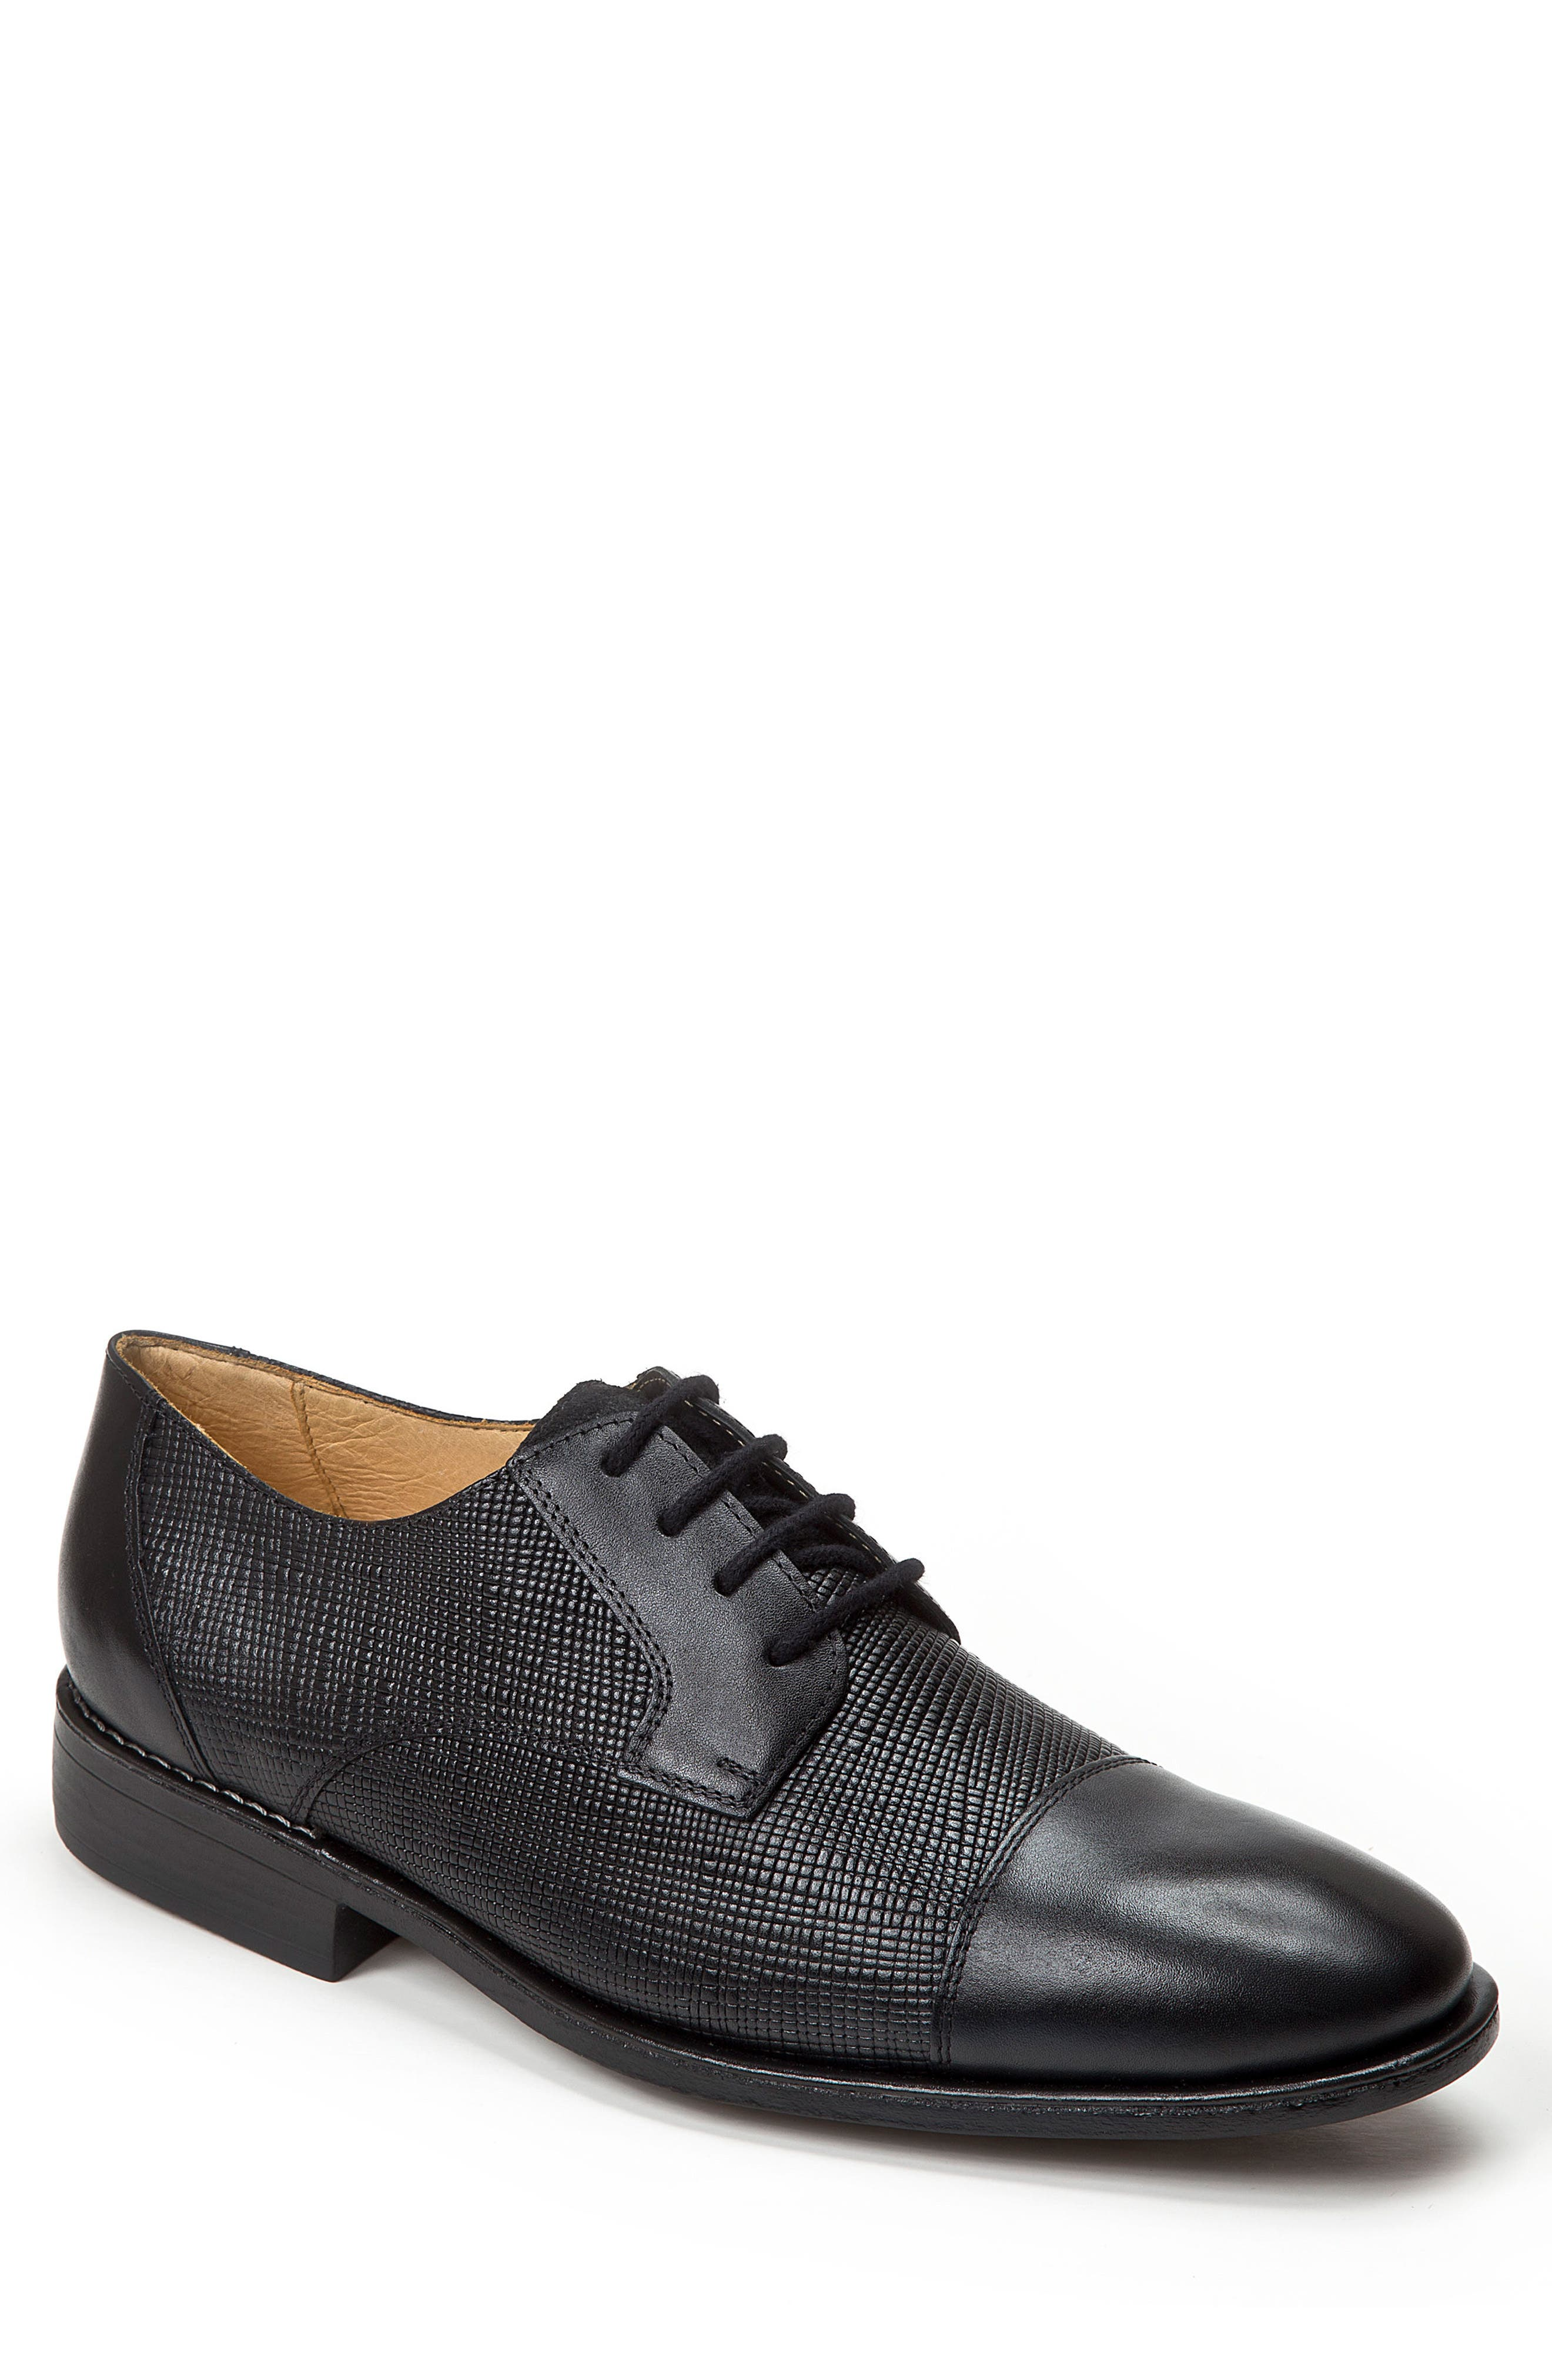 Ronny Embossed Cap Toe Derby,                             Main thumbnail 1, color,                             Black Leather